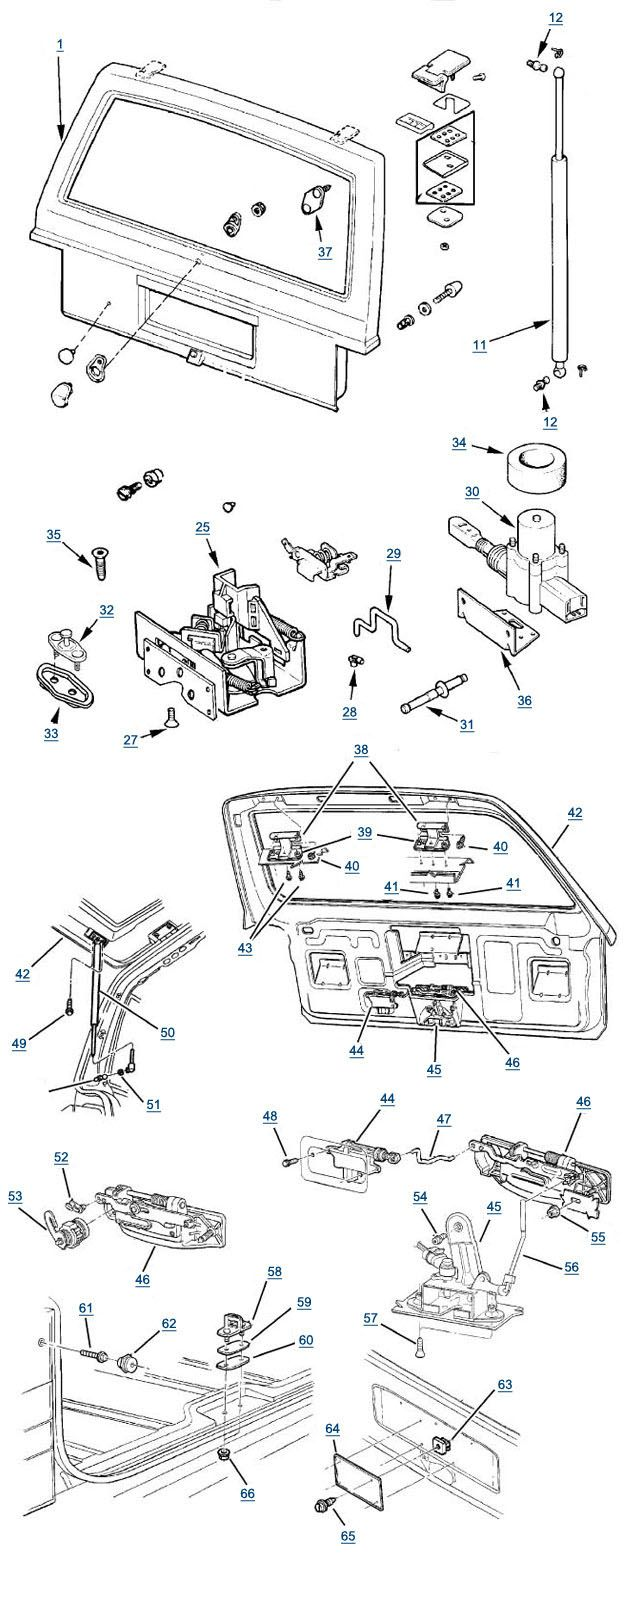 ... 2007 ford f 150 4 6 engine diagram , led for recessed lights wiring  diagram , 2003 saturn vue engine wiring harness locations , wg volvo truck  wiring ...